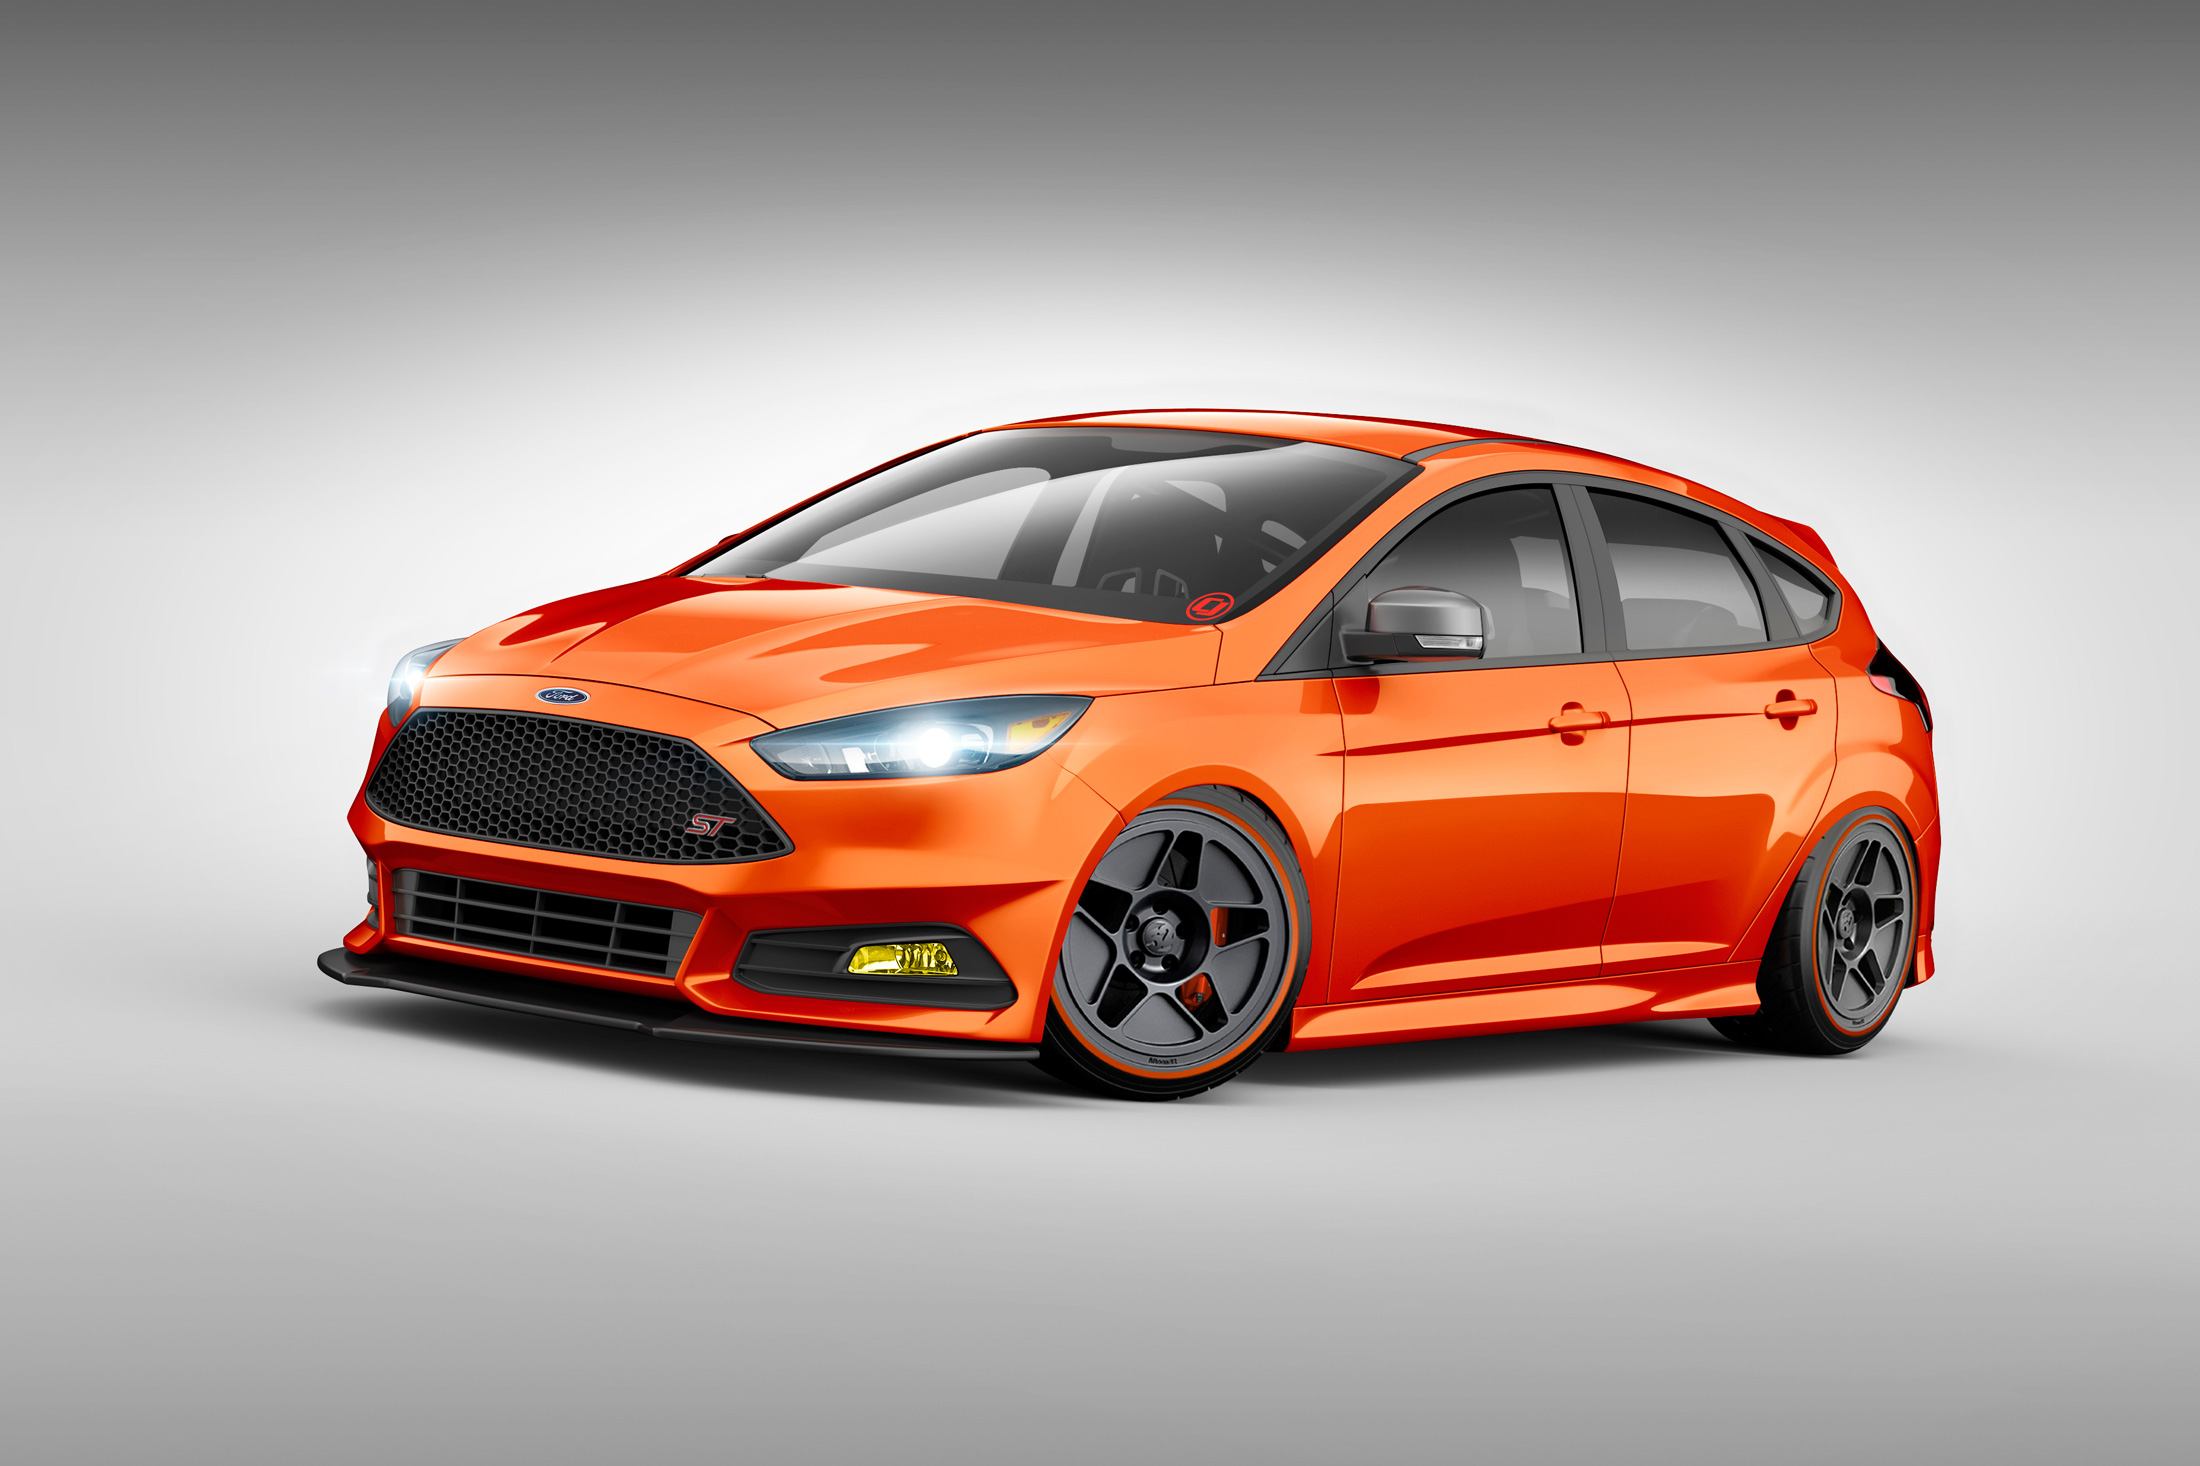 ford previews focus st fiesta st projects for sema. Black Bedroom Furniture Sets. Home Design Ideas